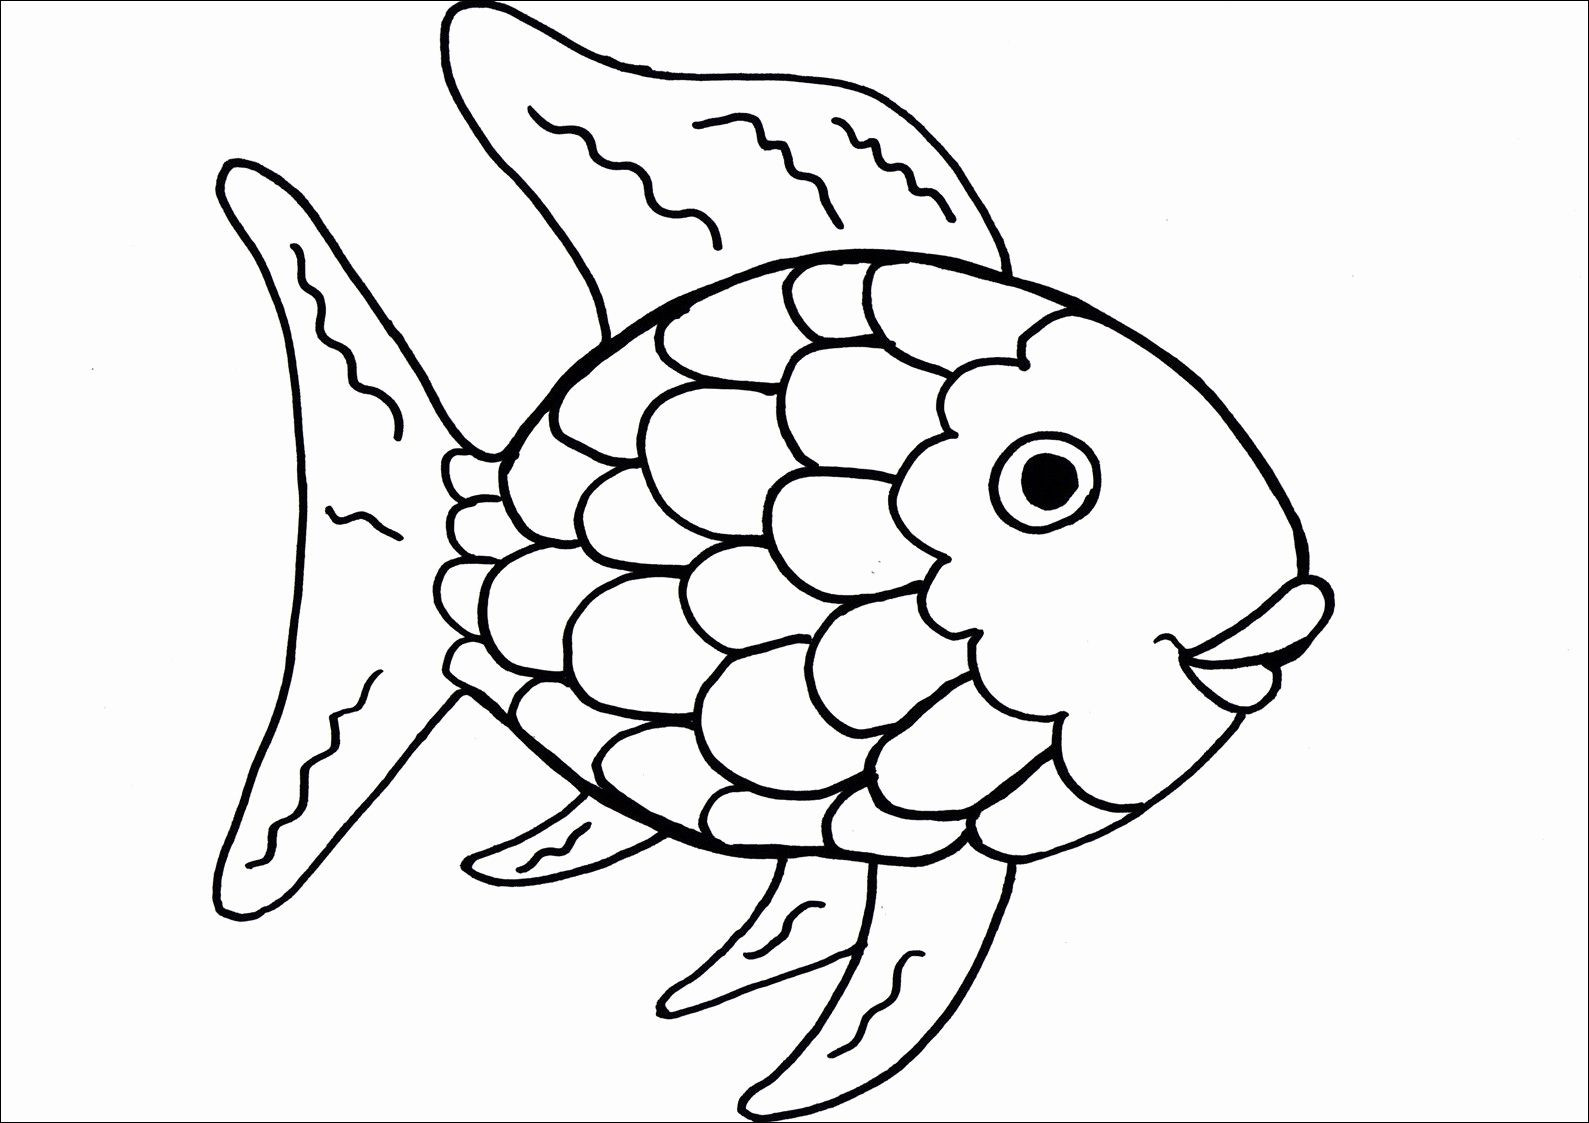 Rainbow Fish Printable Worksheets Activity Coloring Sheets Best Rainbow Fish Printable